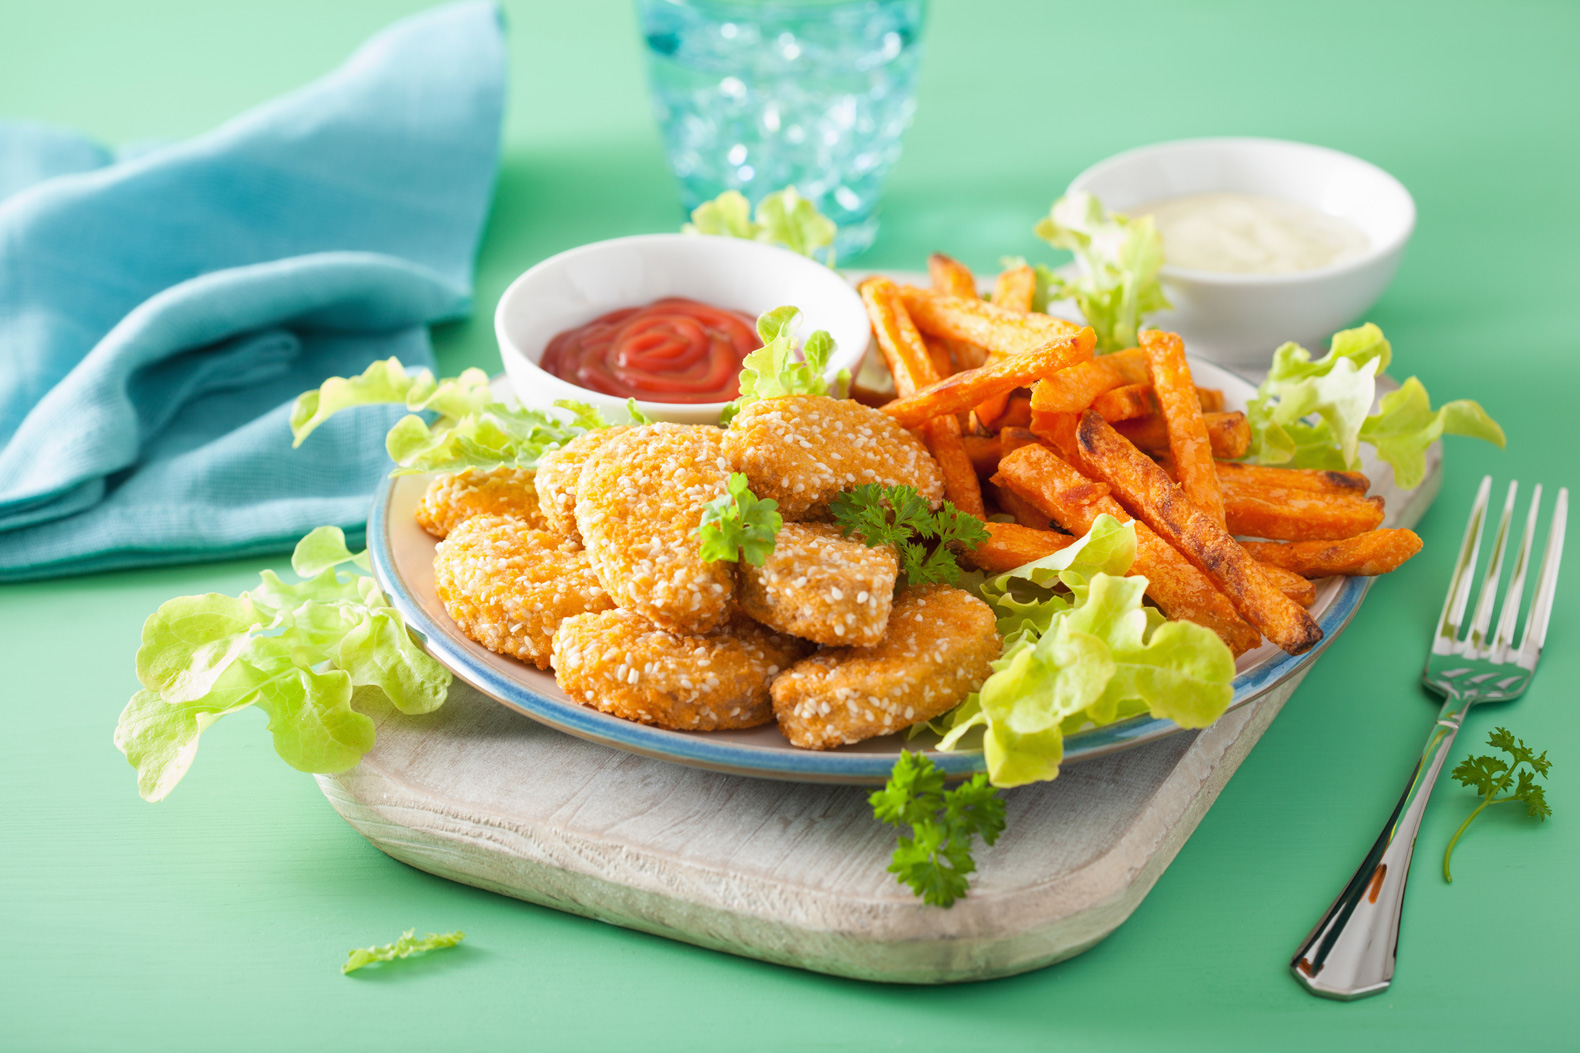 Tyson's plant-based nuggets could disrupt and dominate the market